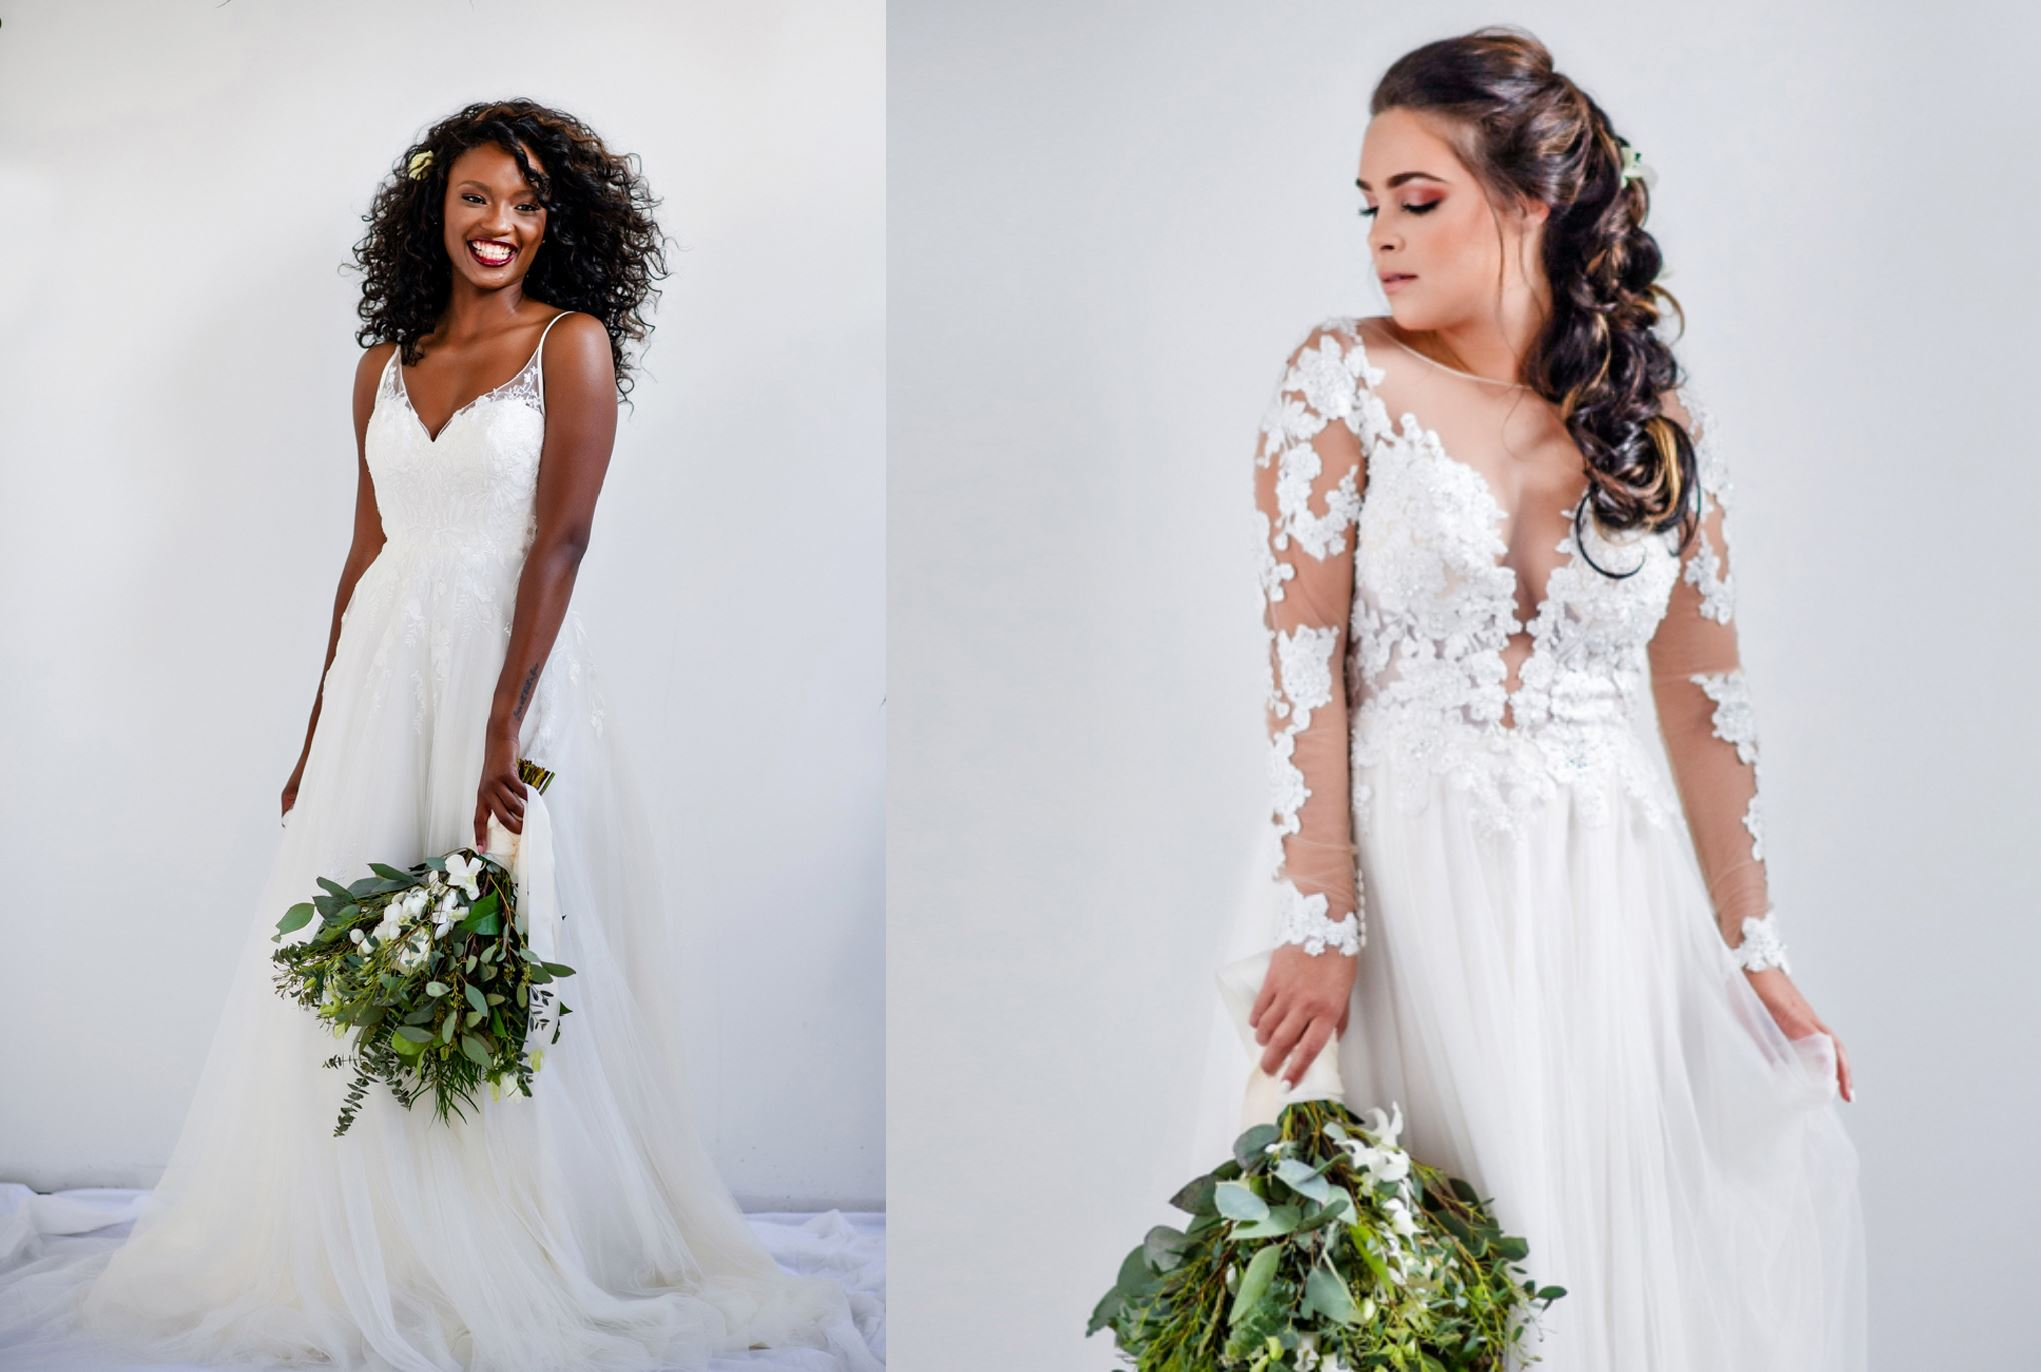 curvy brides in off the rack wedding dresses from here and now bridal in virginia beach